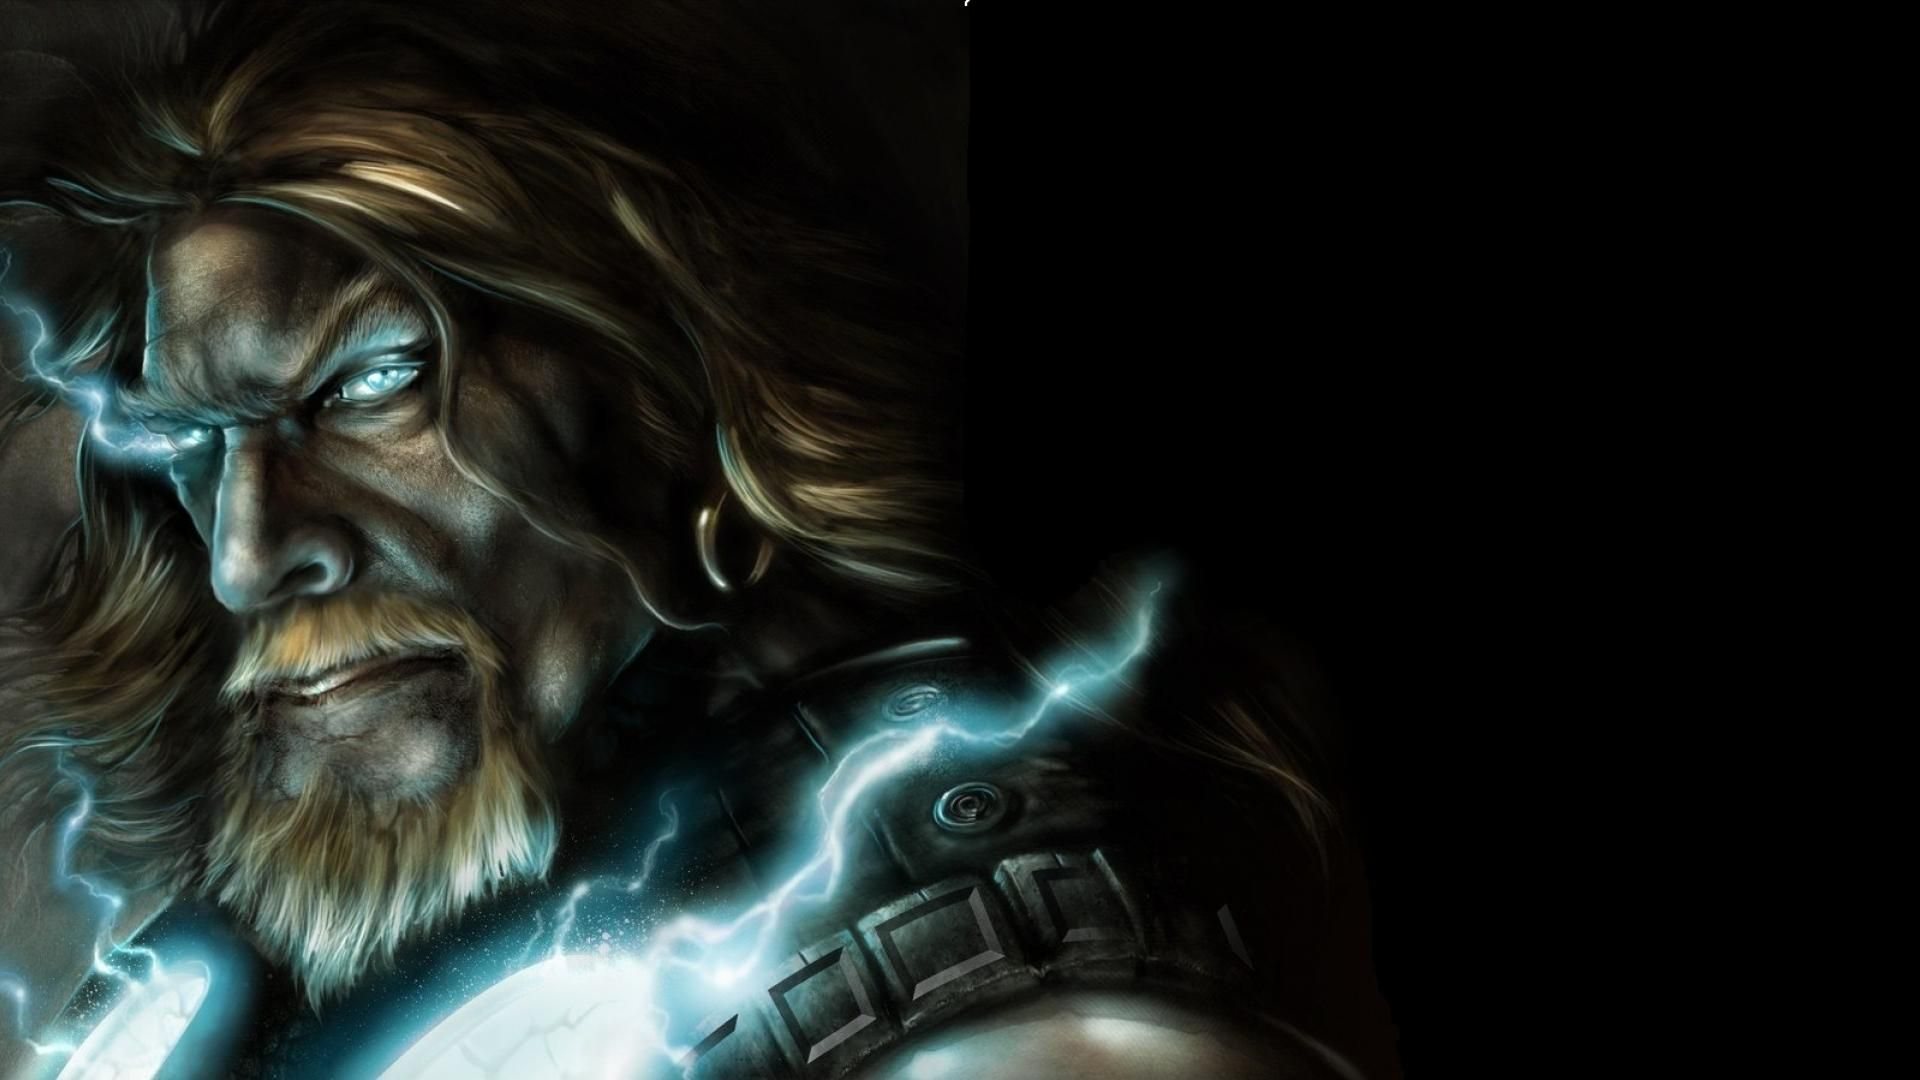 Thor God Art Heroes 1920x1080 Hd Wallpaper And Free Stock Photo